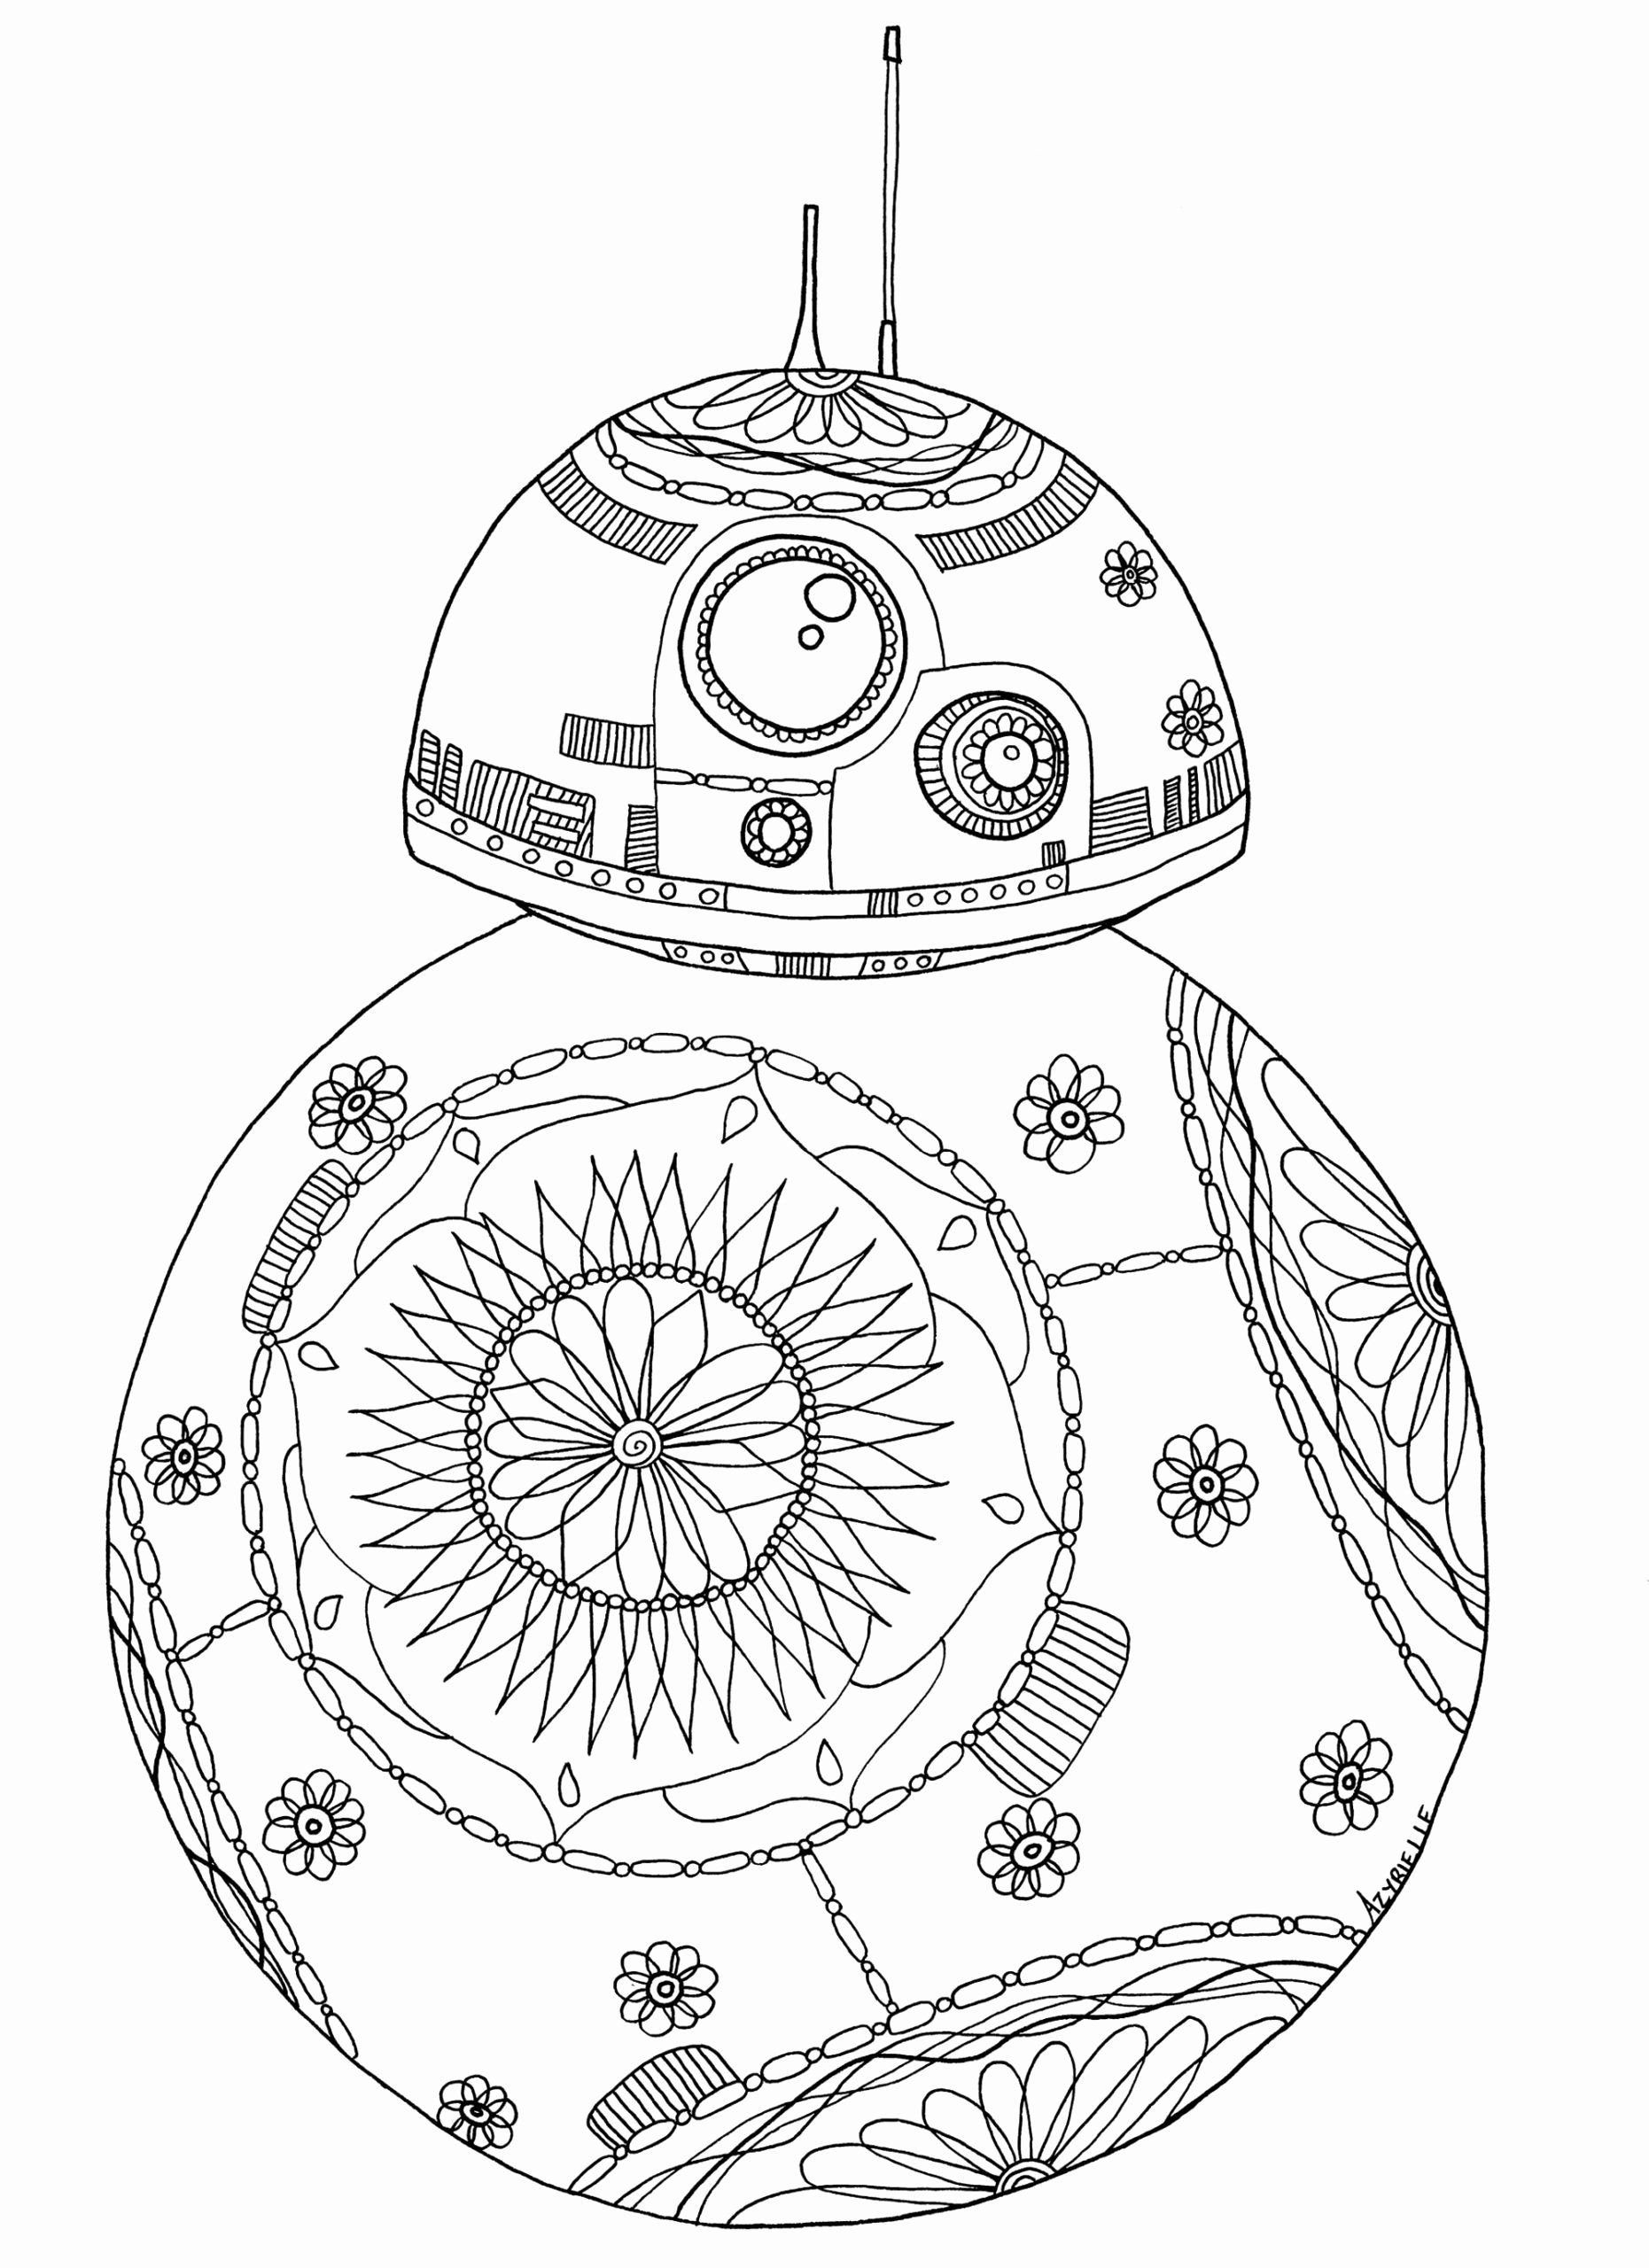 Star Wars Coloring Game Awesome Coloring Book Printable Star Wars Coloring Pages For Kids Star Wars Coloring Sheet Star Wars Coloring Book Star Wars Colors